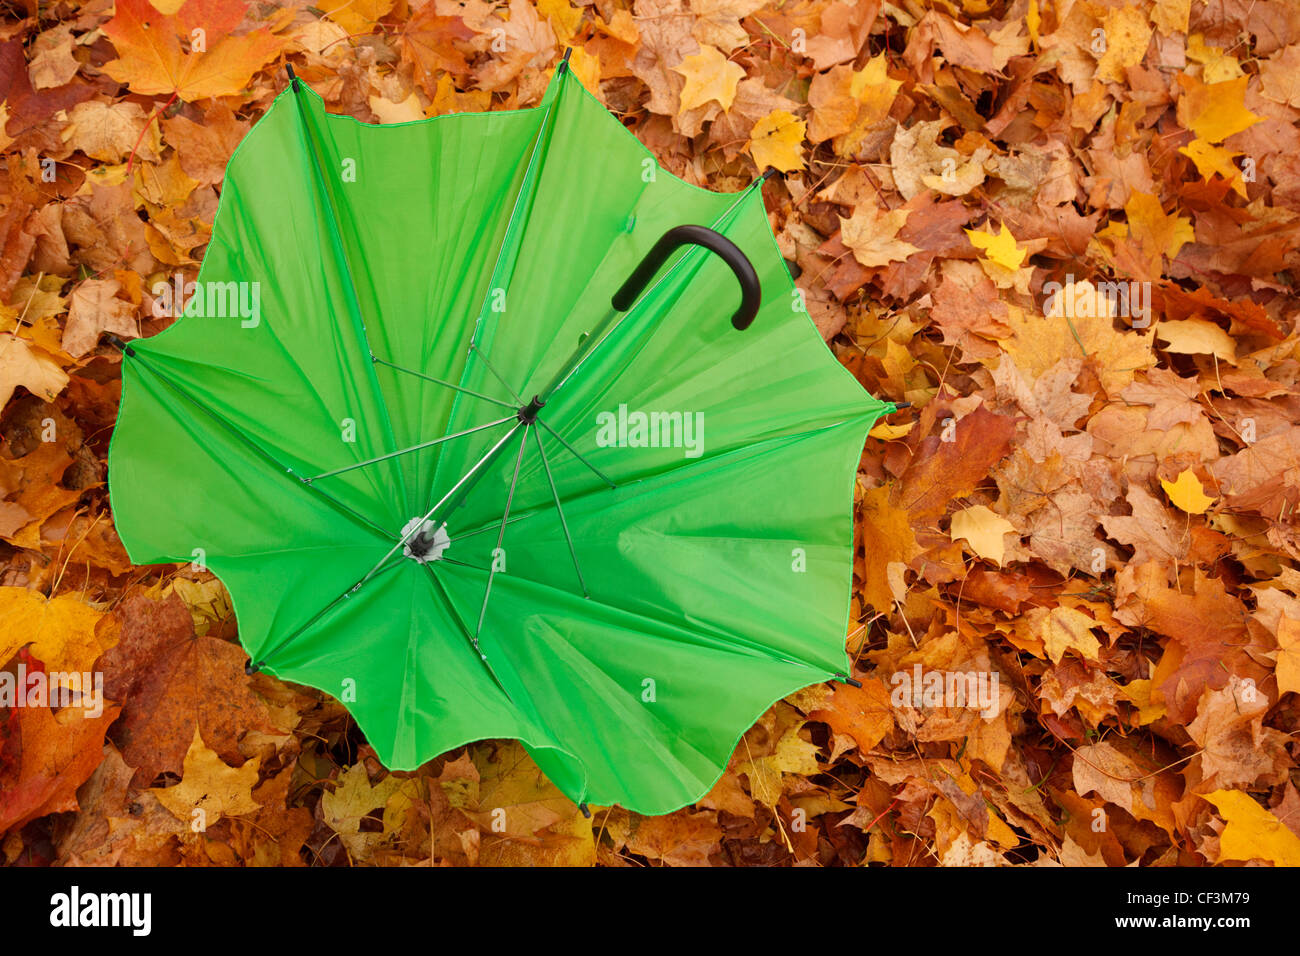 Green opened umbrella lies against yellow autumn leaves. Horizontal format. - Stock Image